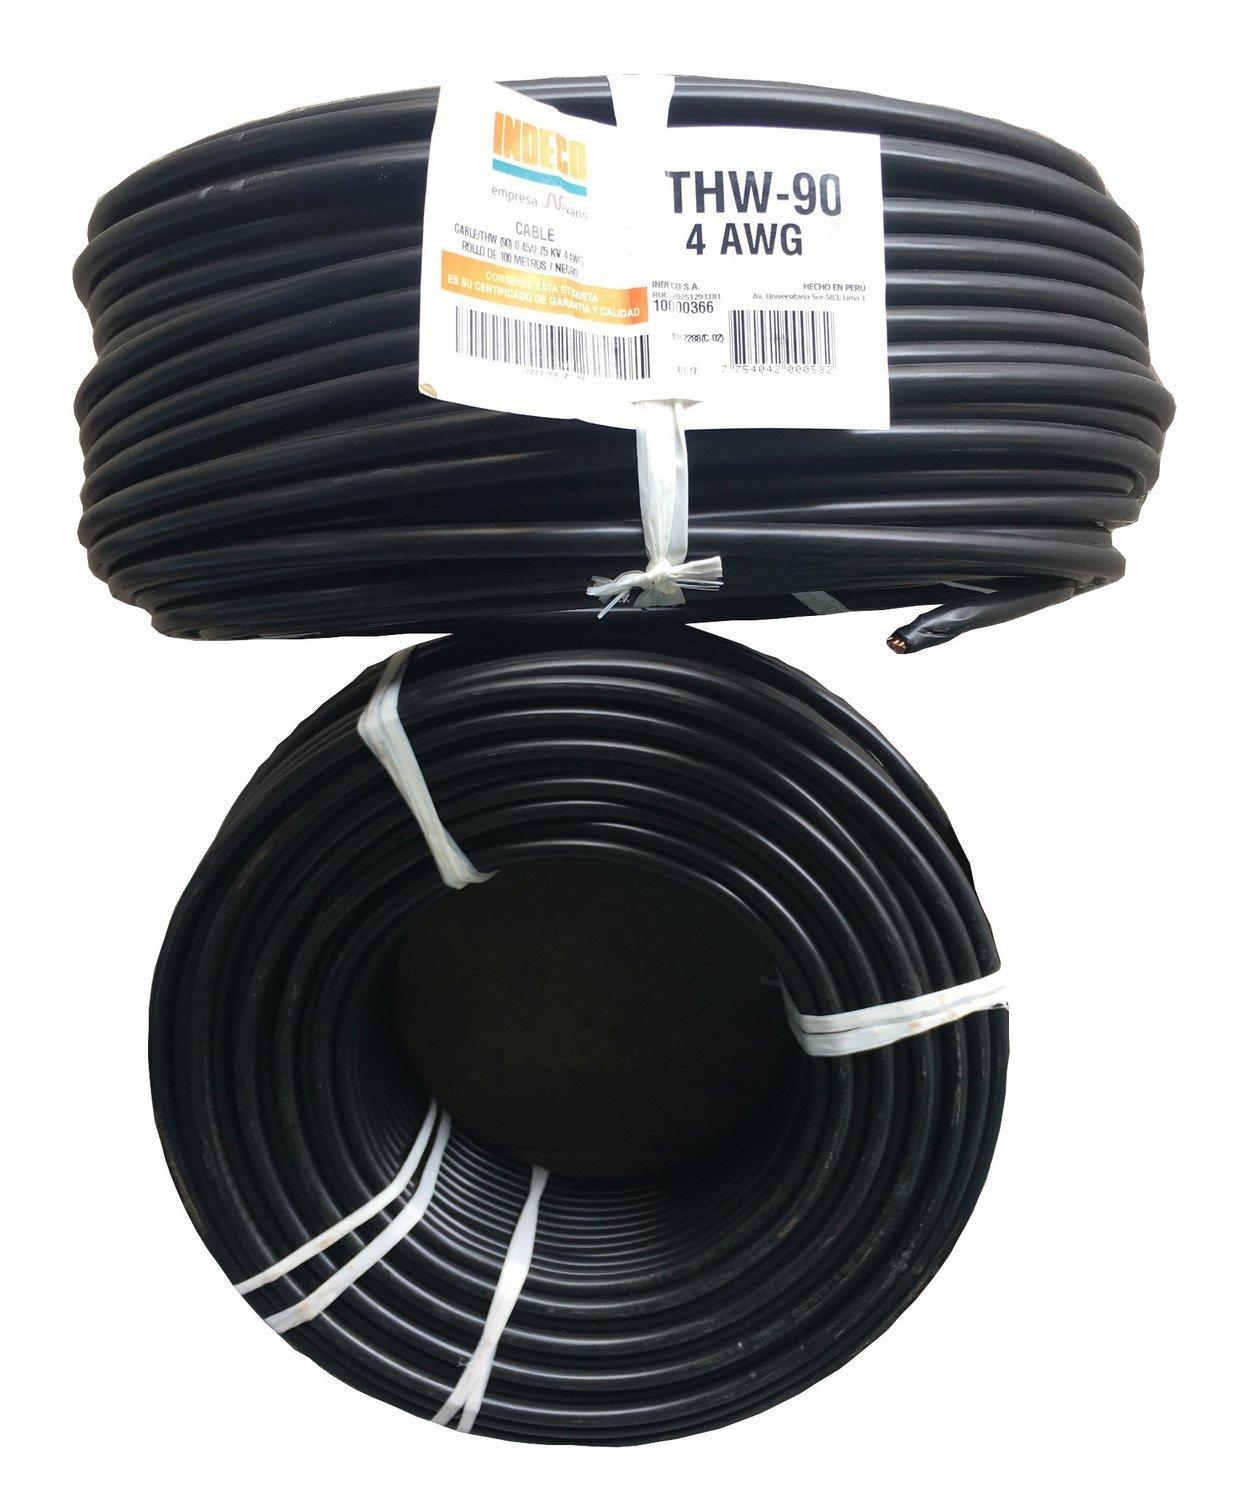 Cable THW90 4AWG